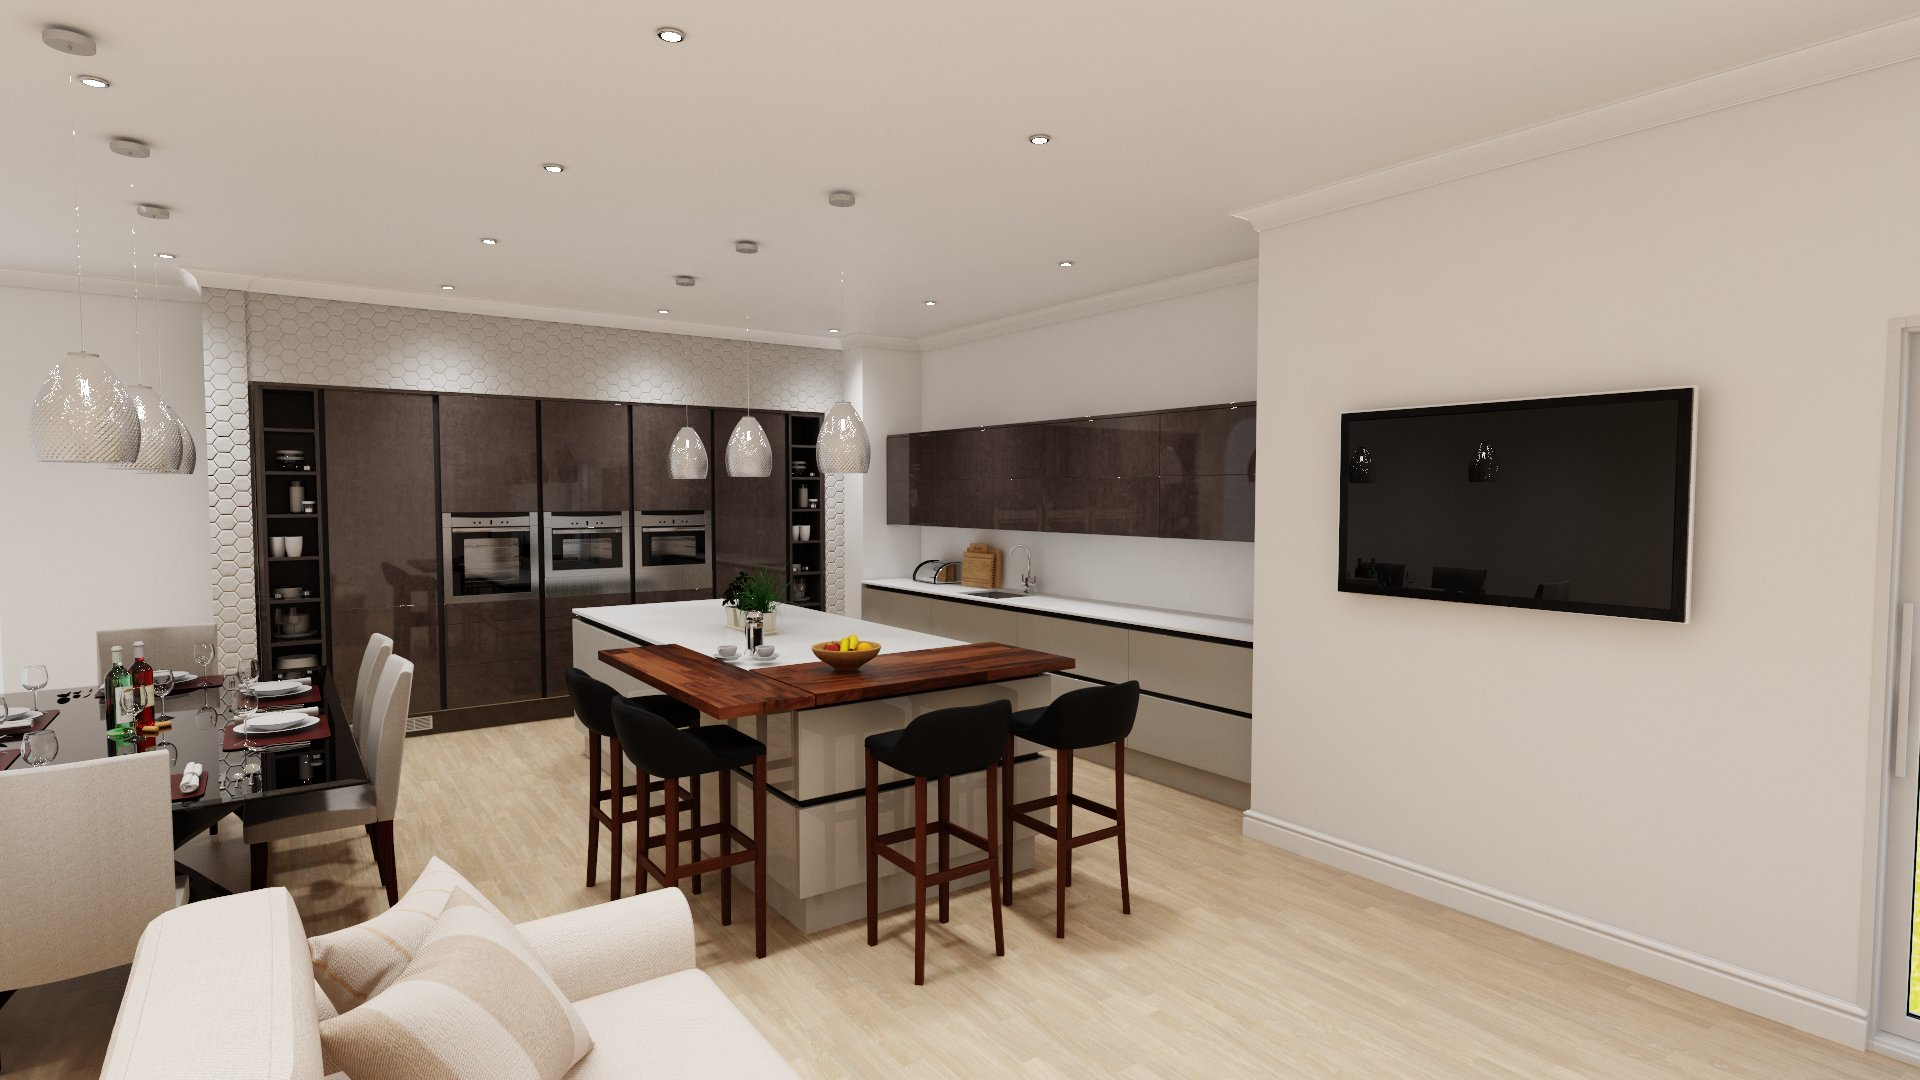 Kitchen preview image